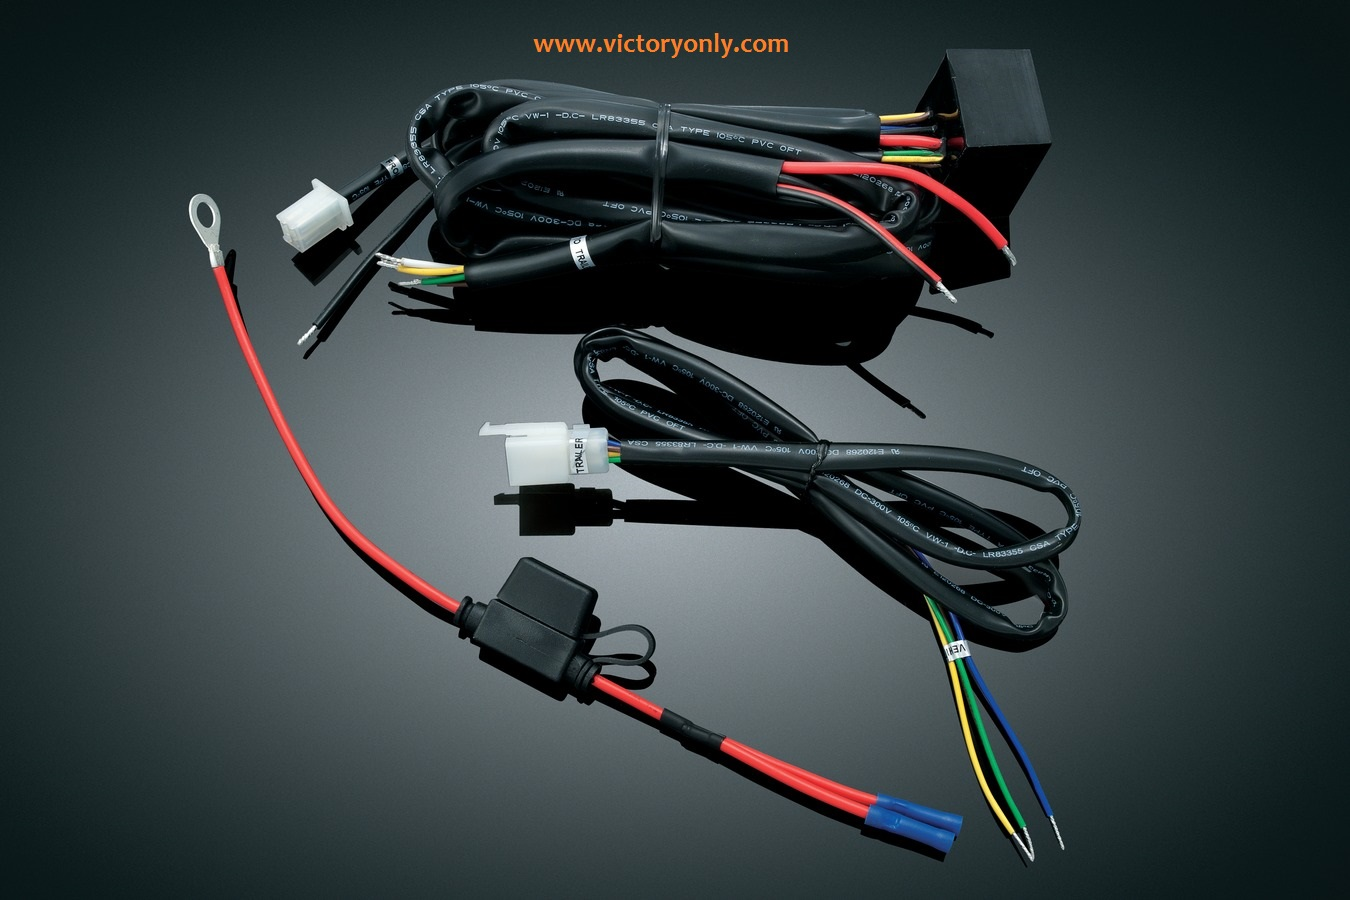 16997_kur_7671_tt_u_13_1350x900_RGB_72DPI trailer wiring harnesses for victory motorcycle motorcycle trailer wiring harness at love-stories.co